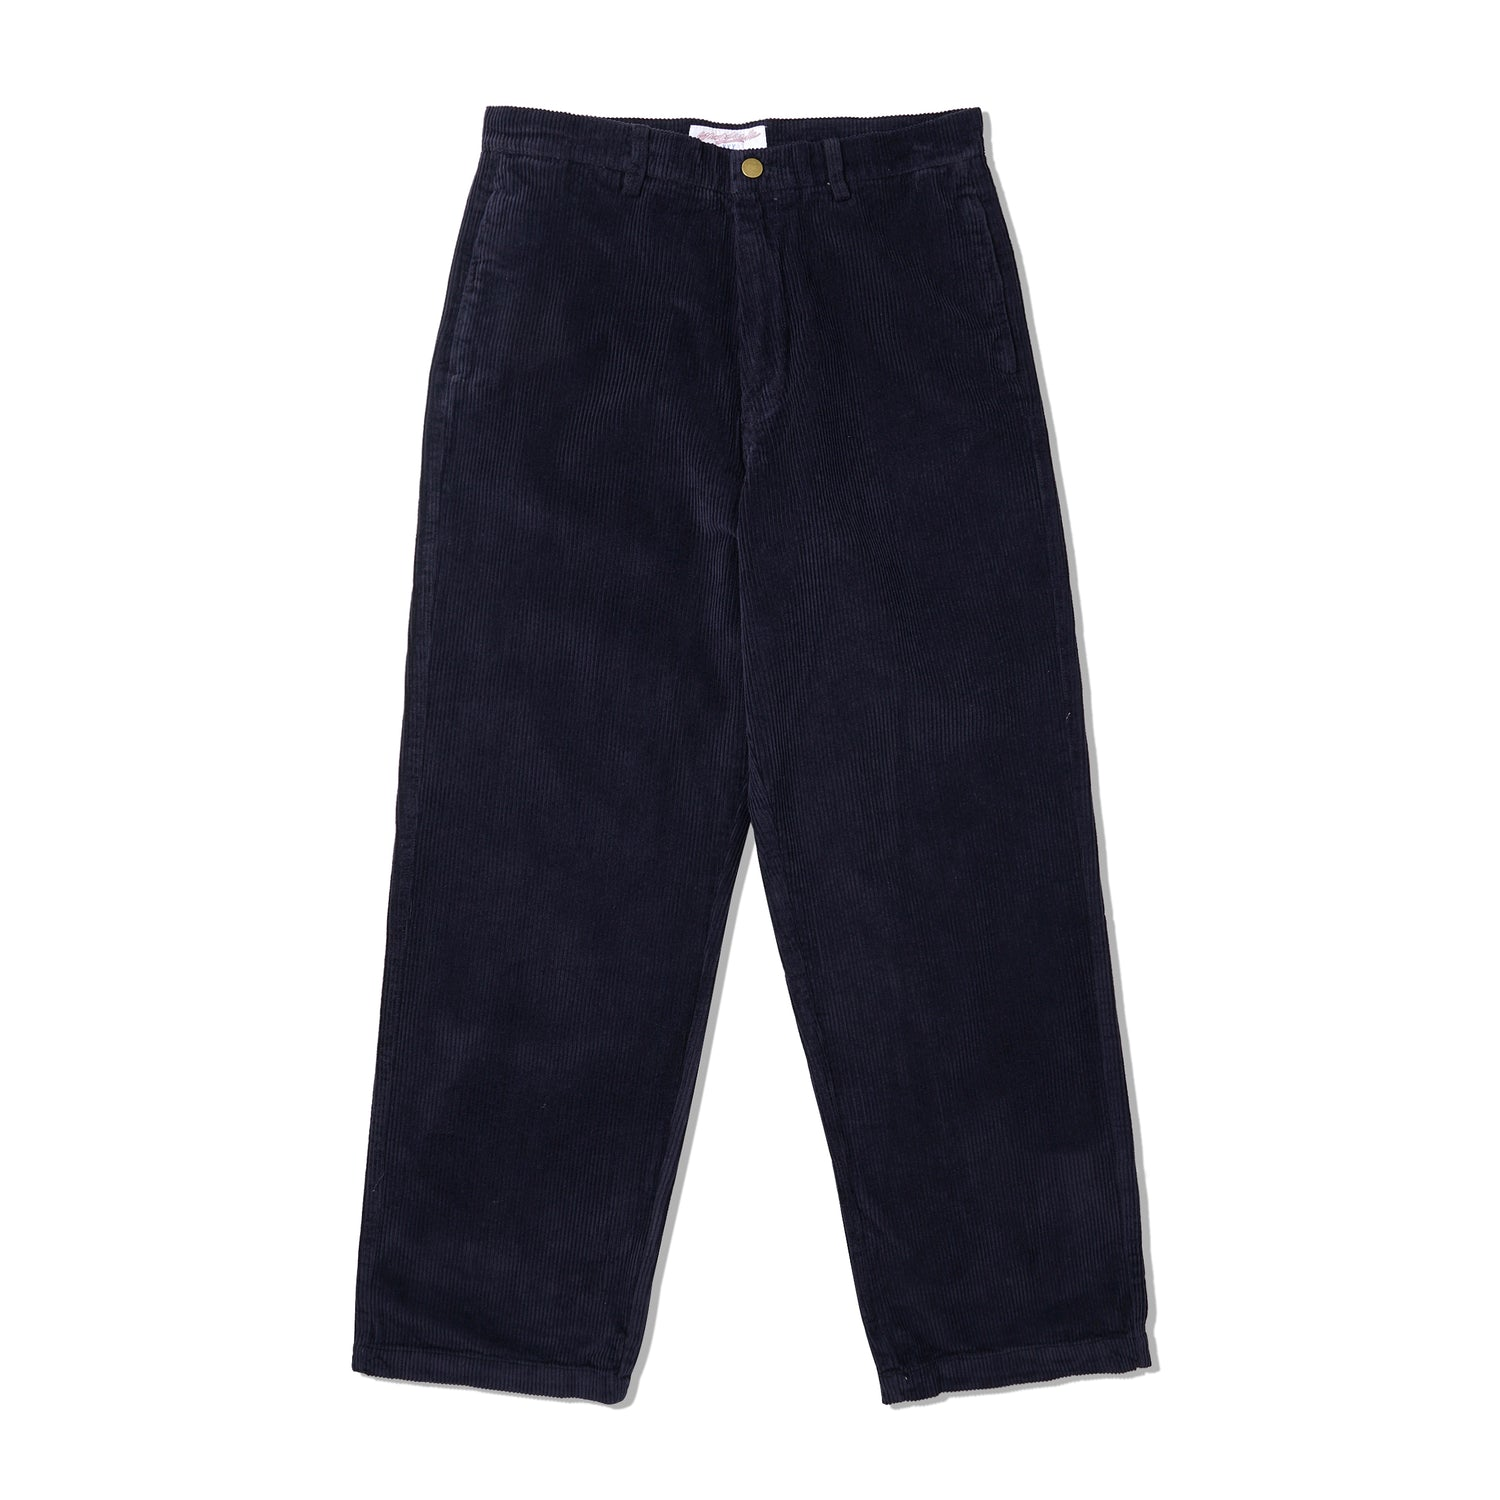 YS Corduroy Slacks, Navy / White